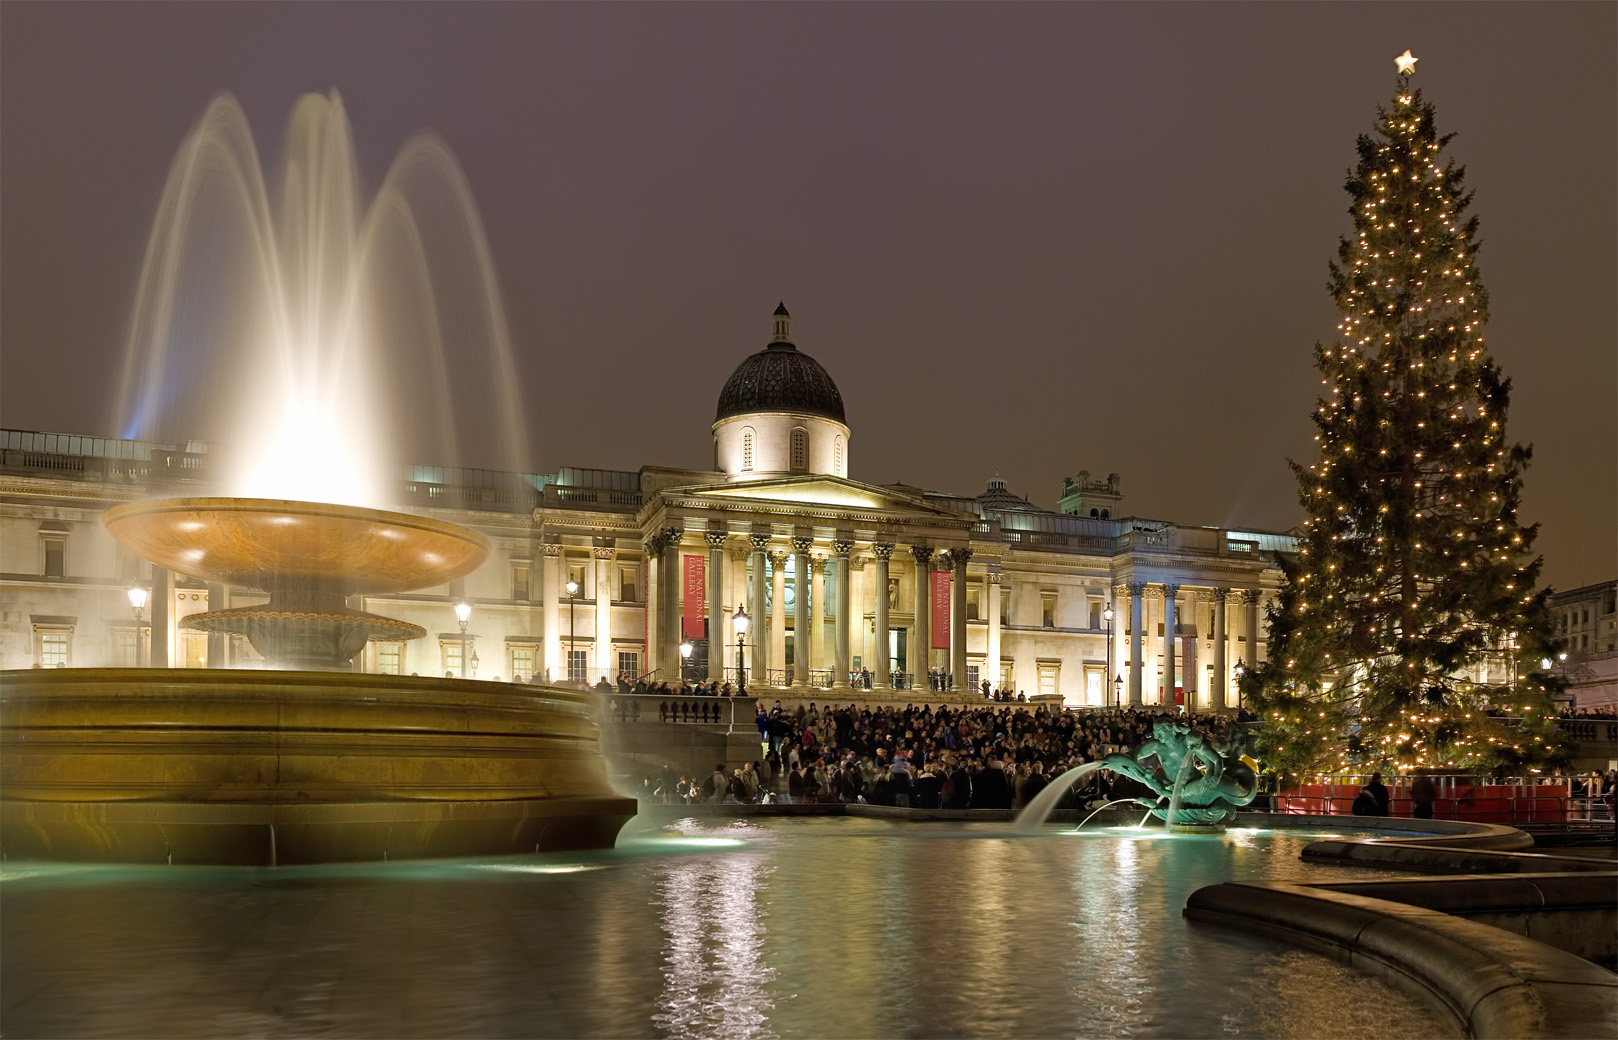 Trafalgar Square Christmas Carols - Dec 2006.jpg